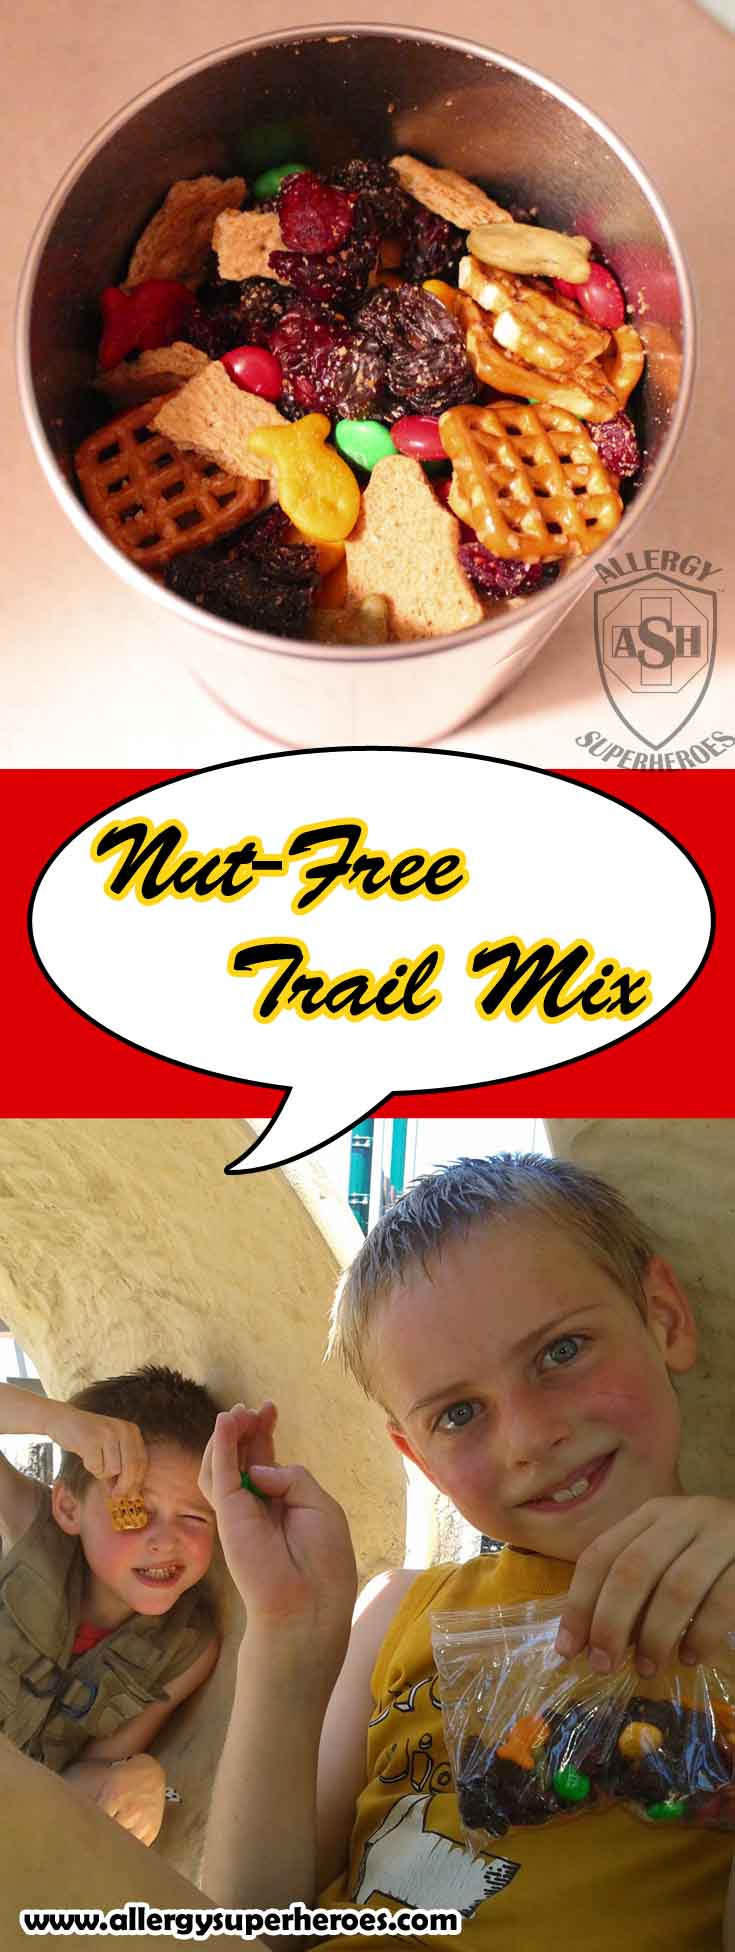 Nut Free Trail Mix | Allergy Friendly | Easy to Make and Great for Kids! | from Allergy Superheroes